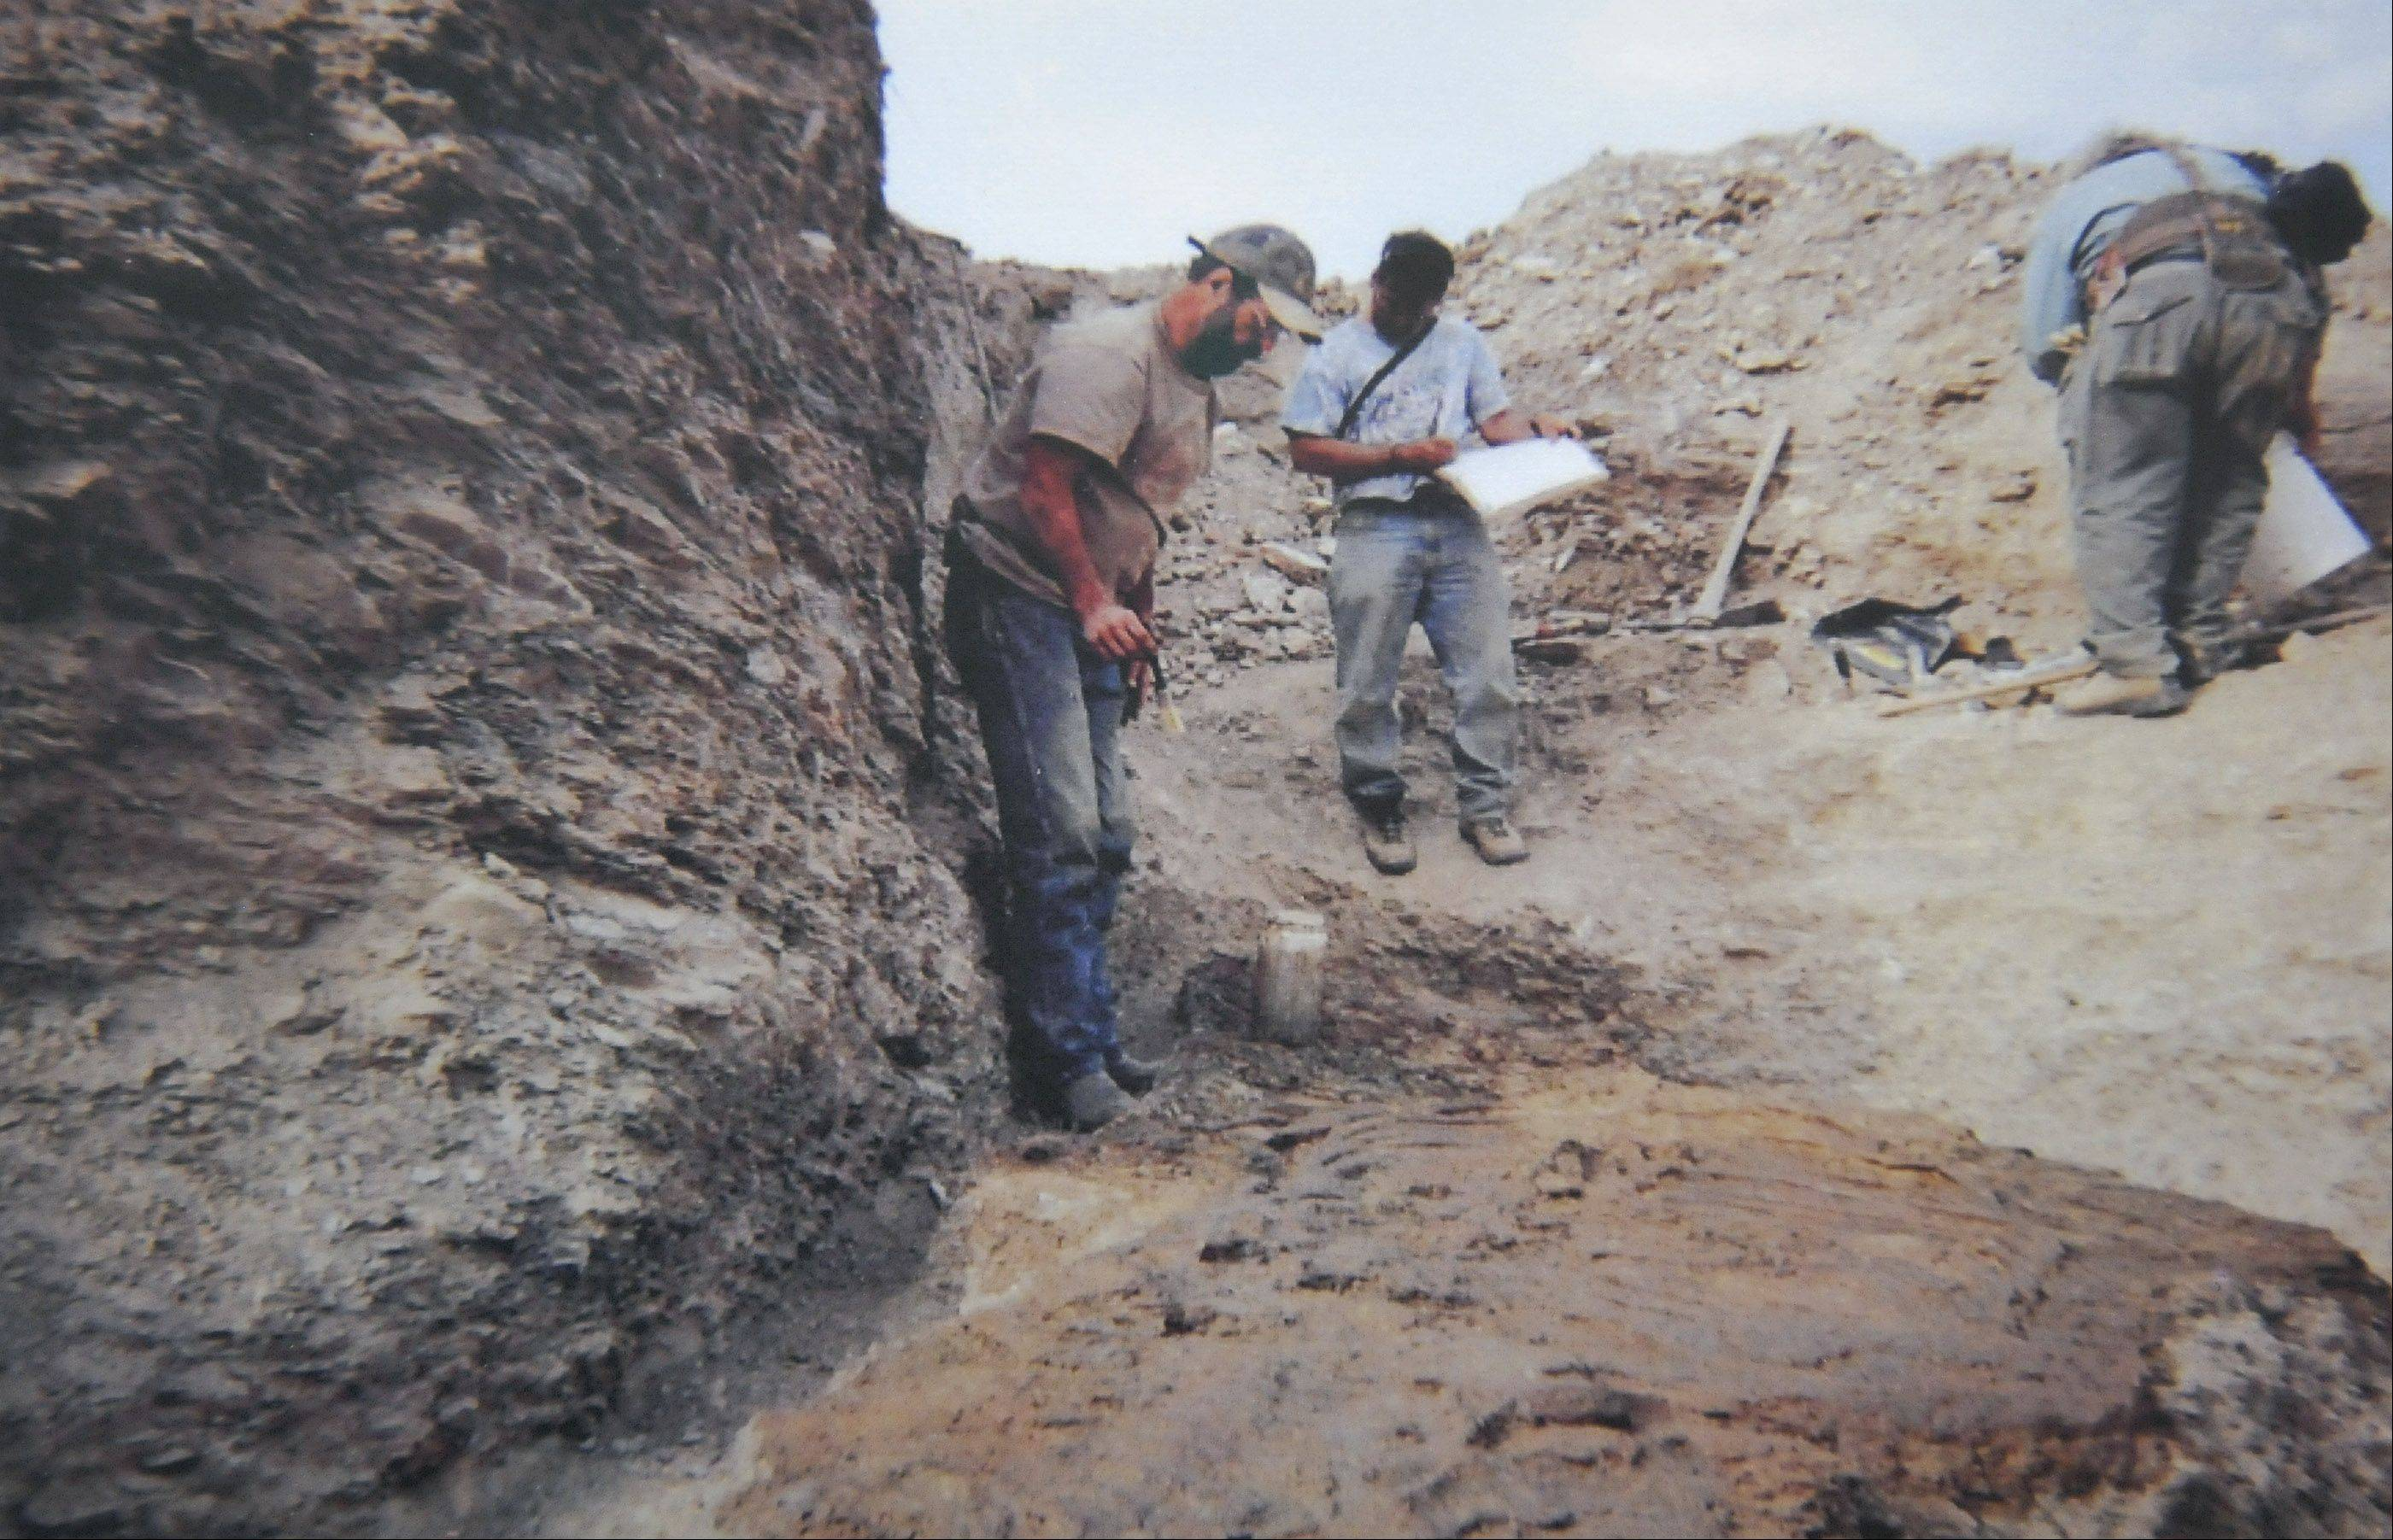 This photograph shows Rob Sula working on a site map for the tylosaurus he found in Nebraska.